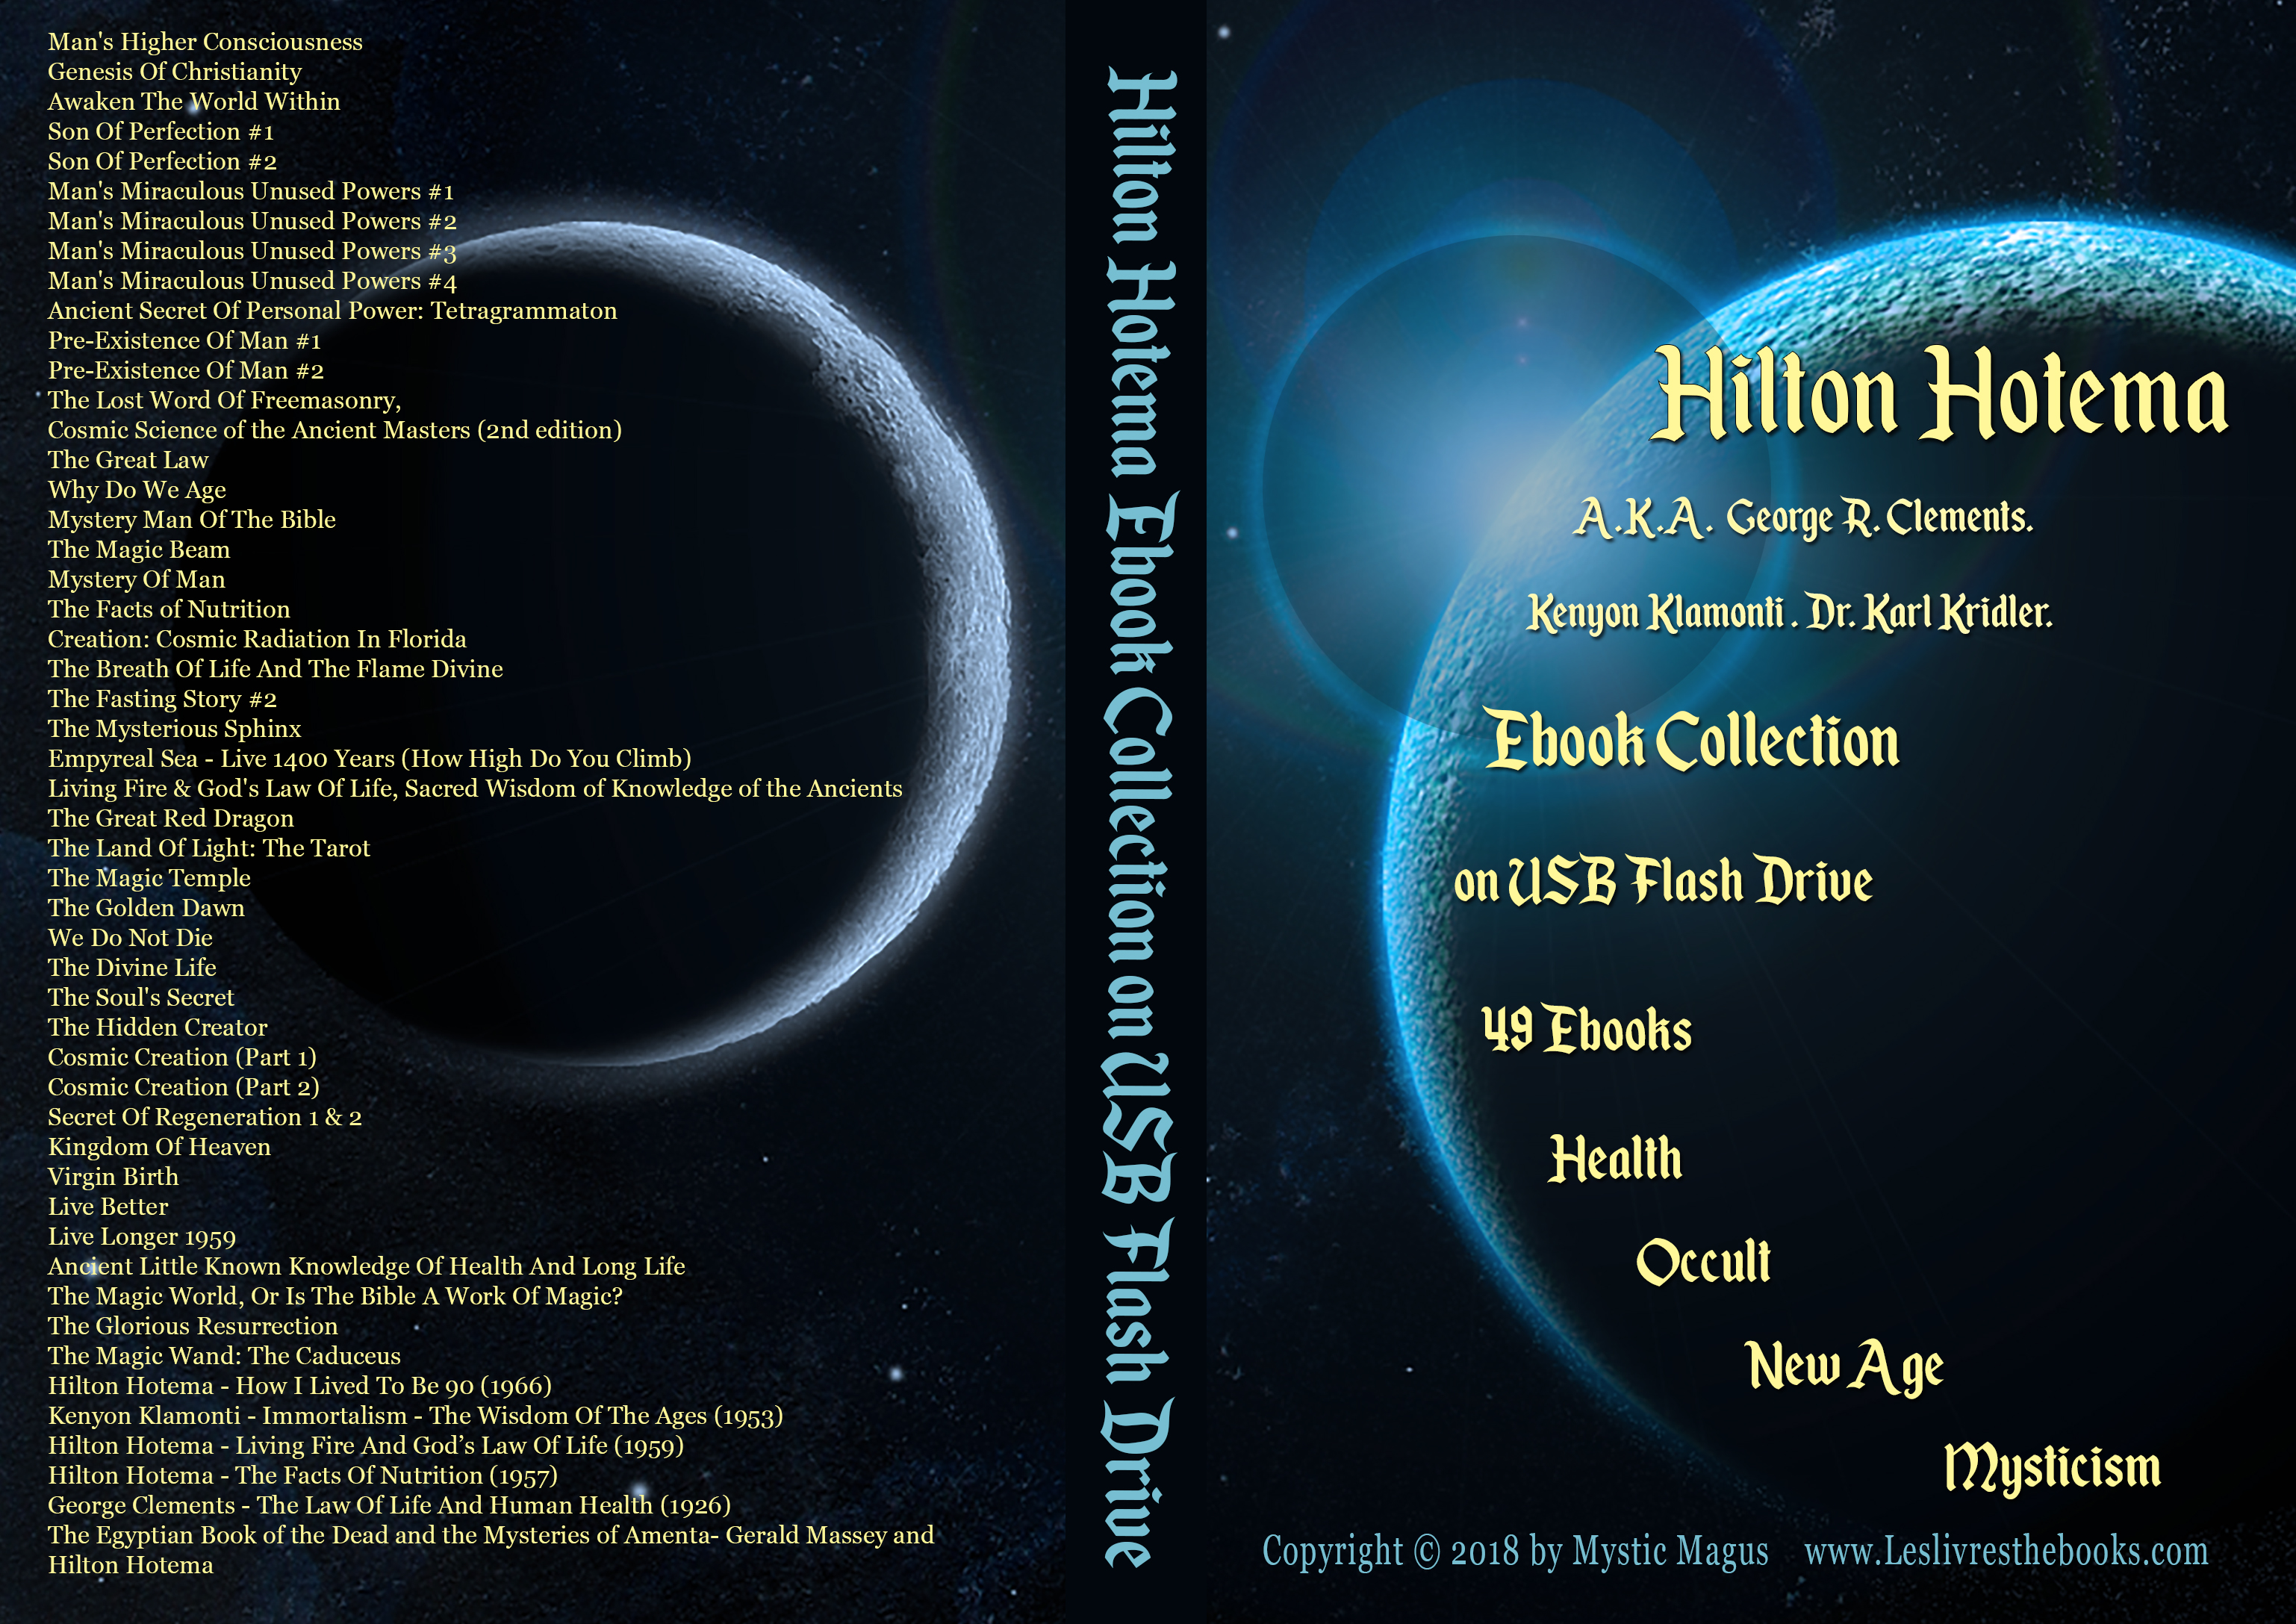 Image for Hilton Hotema Collection 49 EBooks On USB Flash Drive. Man's Higher Consciousness, Why Do We Age, Magic Wand: The Caduceus,  Facts of Nutrition, Tetragrammaton, Golden Dawn, and many more! Occult, Esoteric, Health, Mystic, Philosophy, New Age, Metaphysics